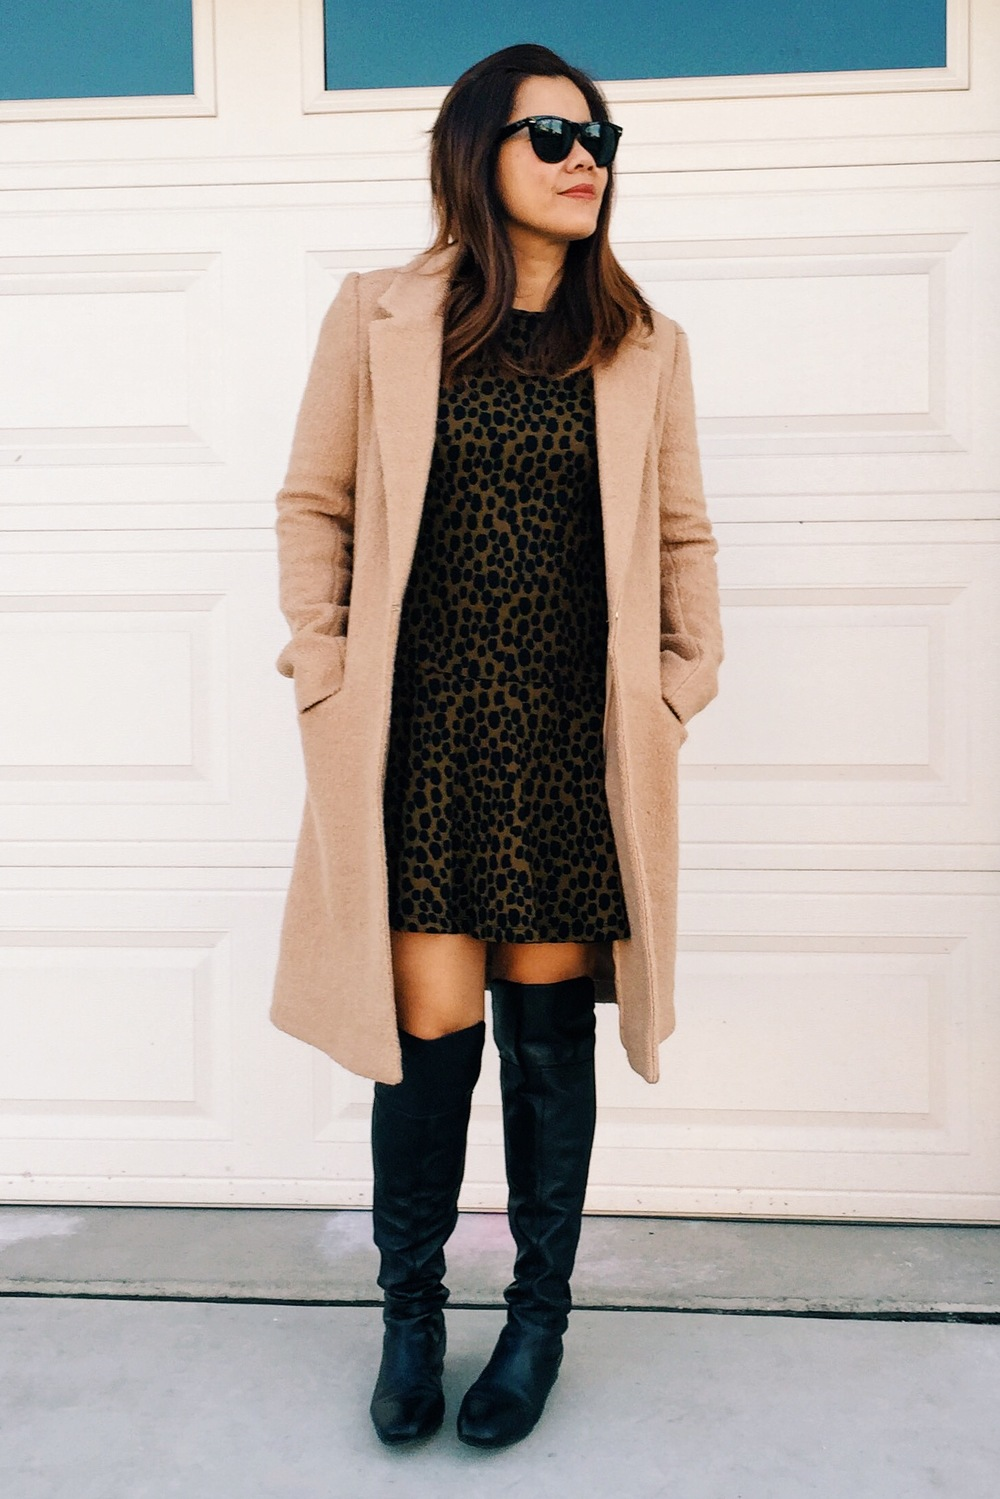 Camel coat from Forever21. Dress from Loft. OTK boots from Nordstrom.